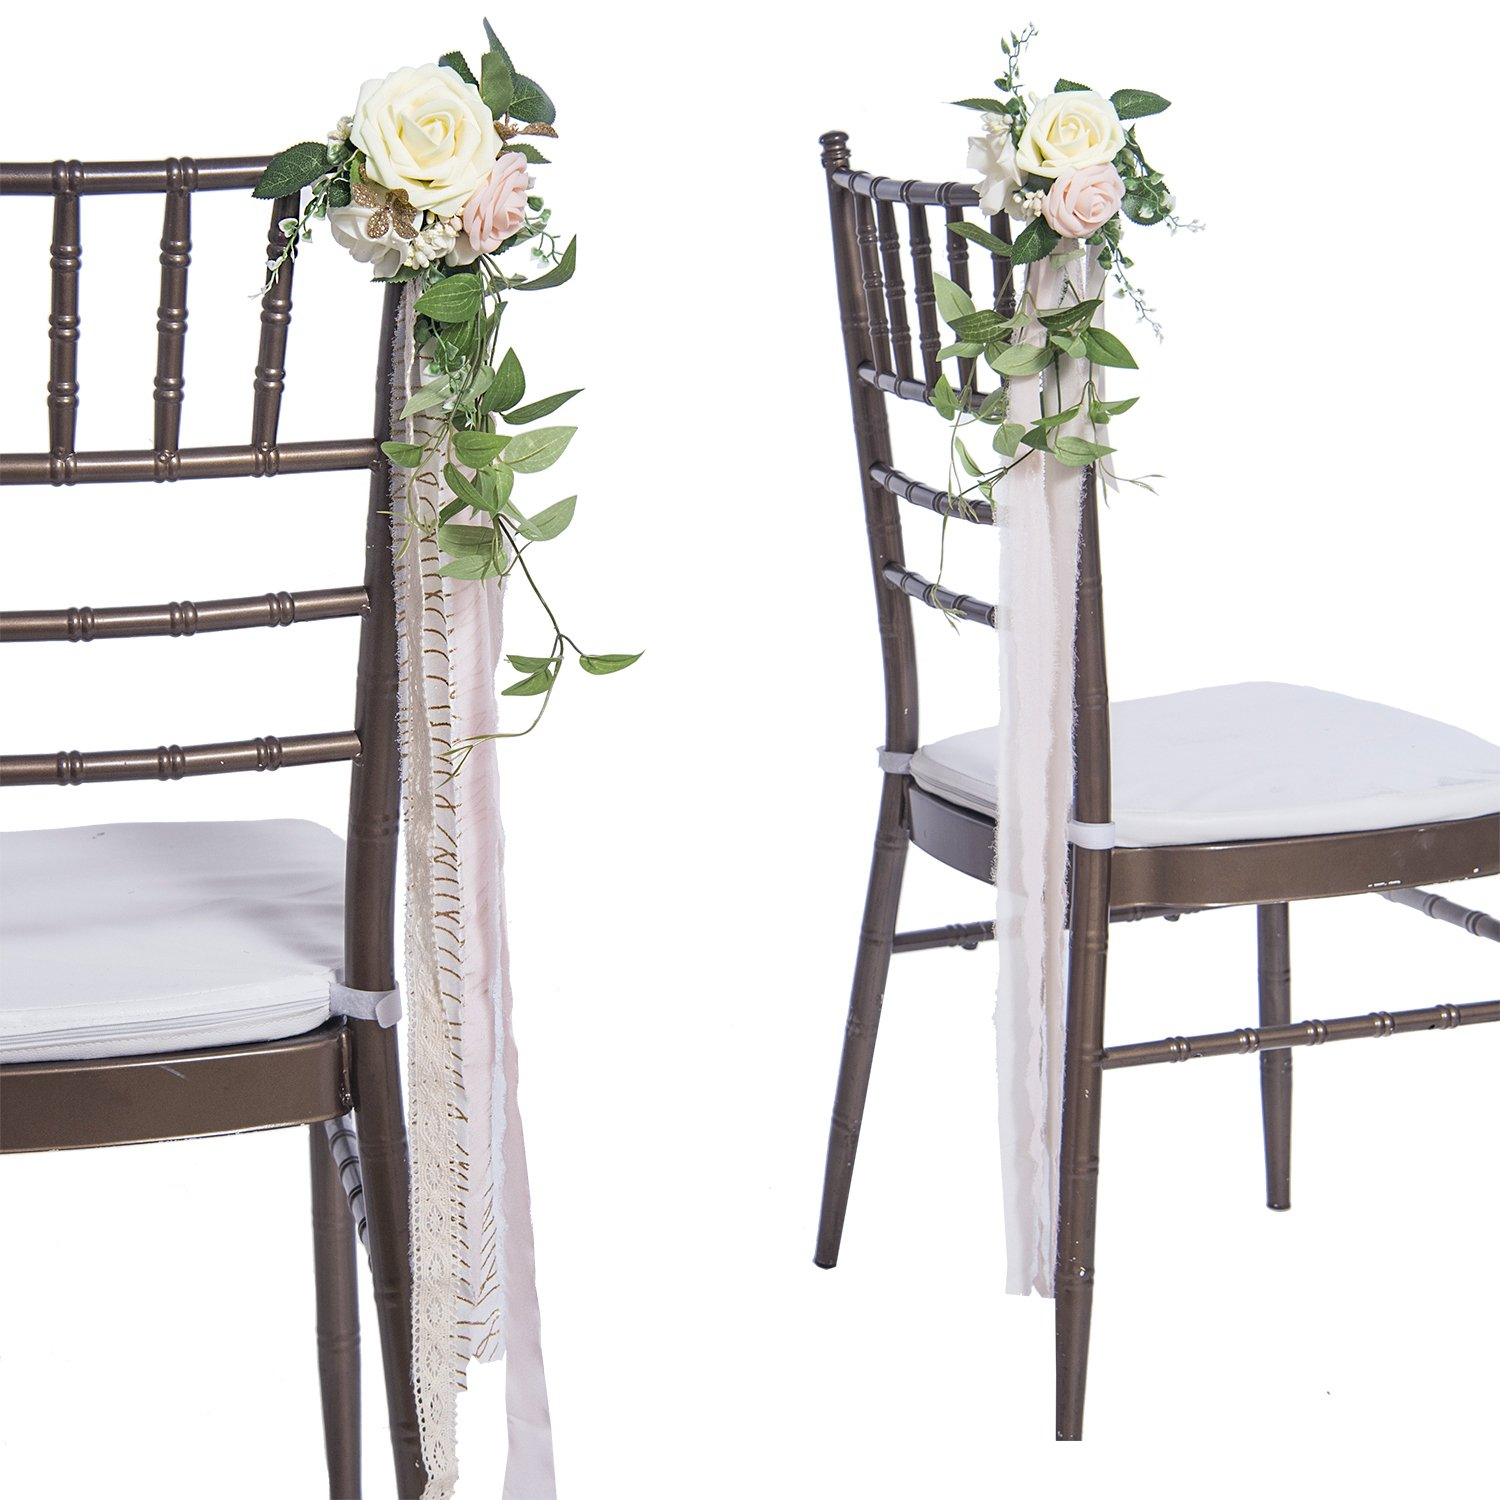 Ling's moment Wedding Aisle Decorations Chair Hanging Flowers Set of 8 Blush Ivory Pew Flowers with Drapes